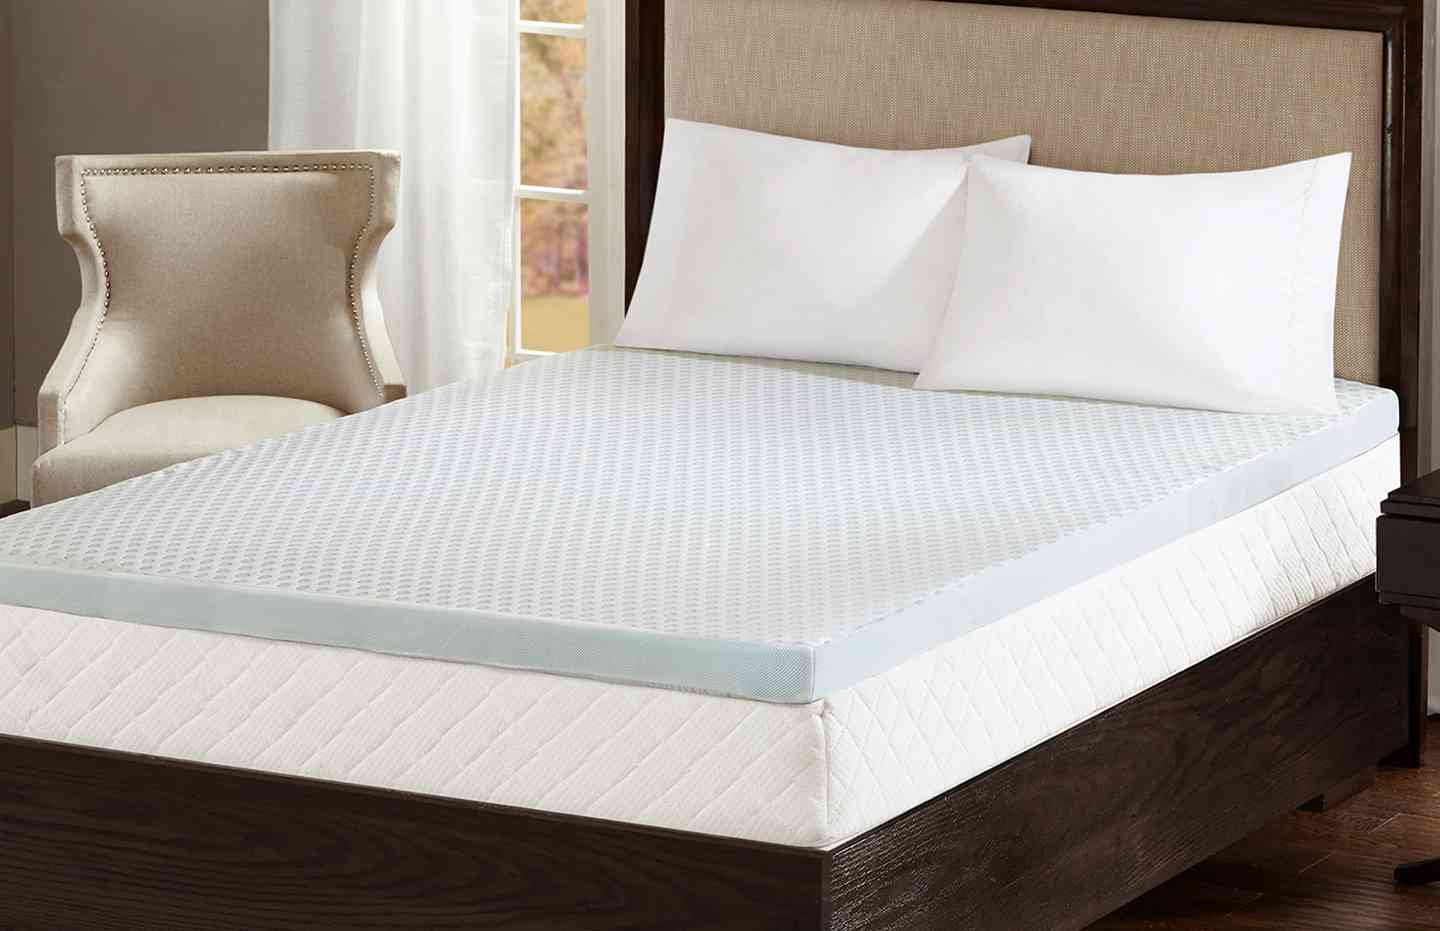 Gel Topper 200x200 Mattress Toppers For Your Layering Options